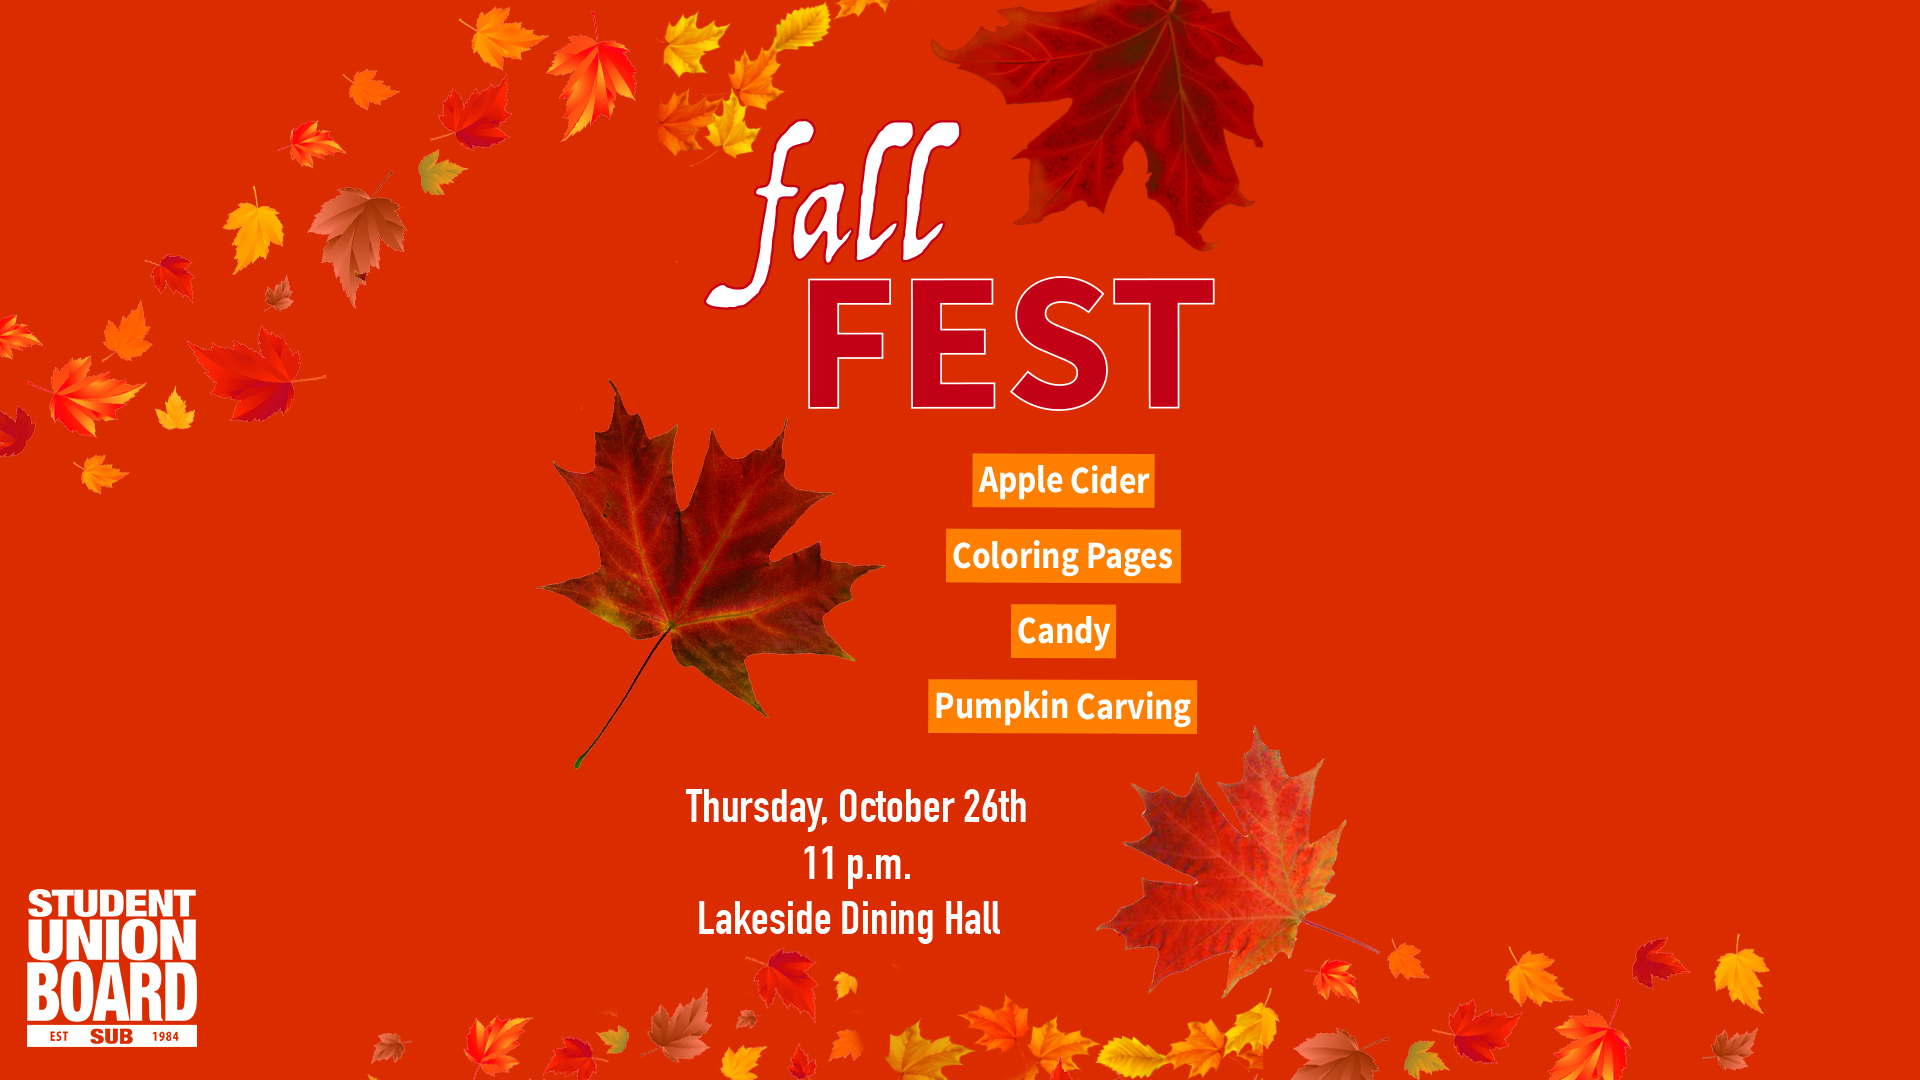 Join us to celebrate fall with pumpkin carving, apple cider and lots of candy at 11pm this Thursday!